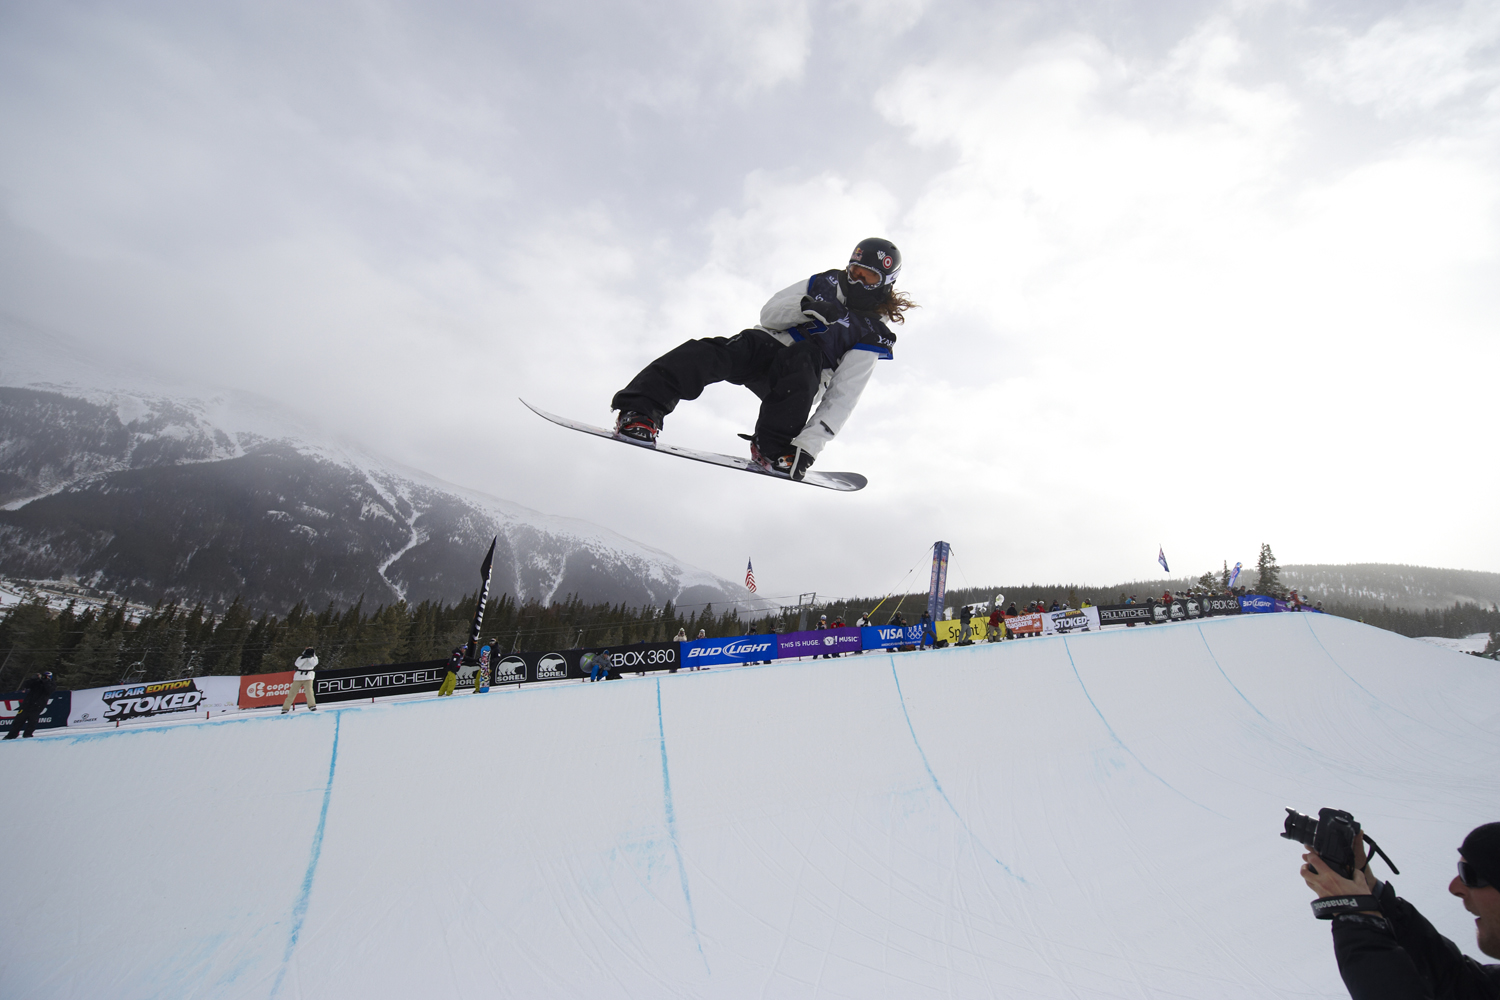 US Grand Prix: USA Shaun White in action during Men's Halfpipe Final at Copper Mountain Ski Resort.